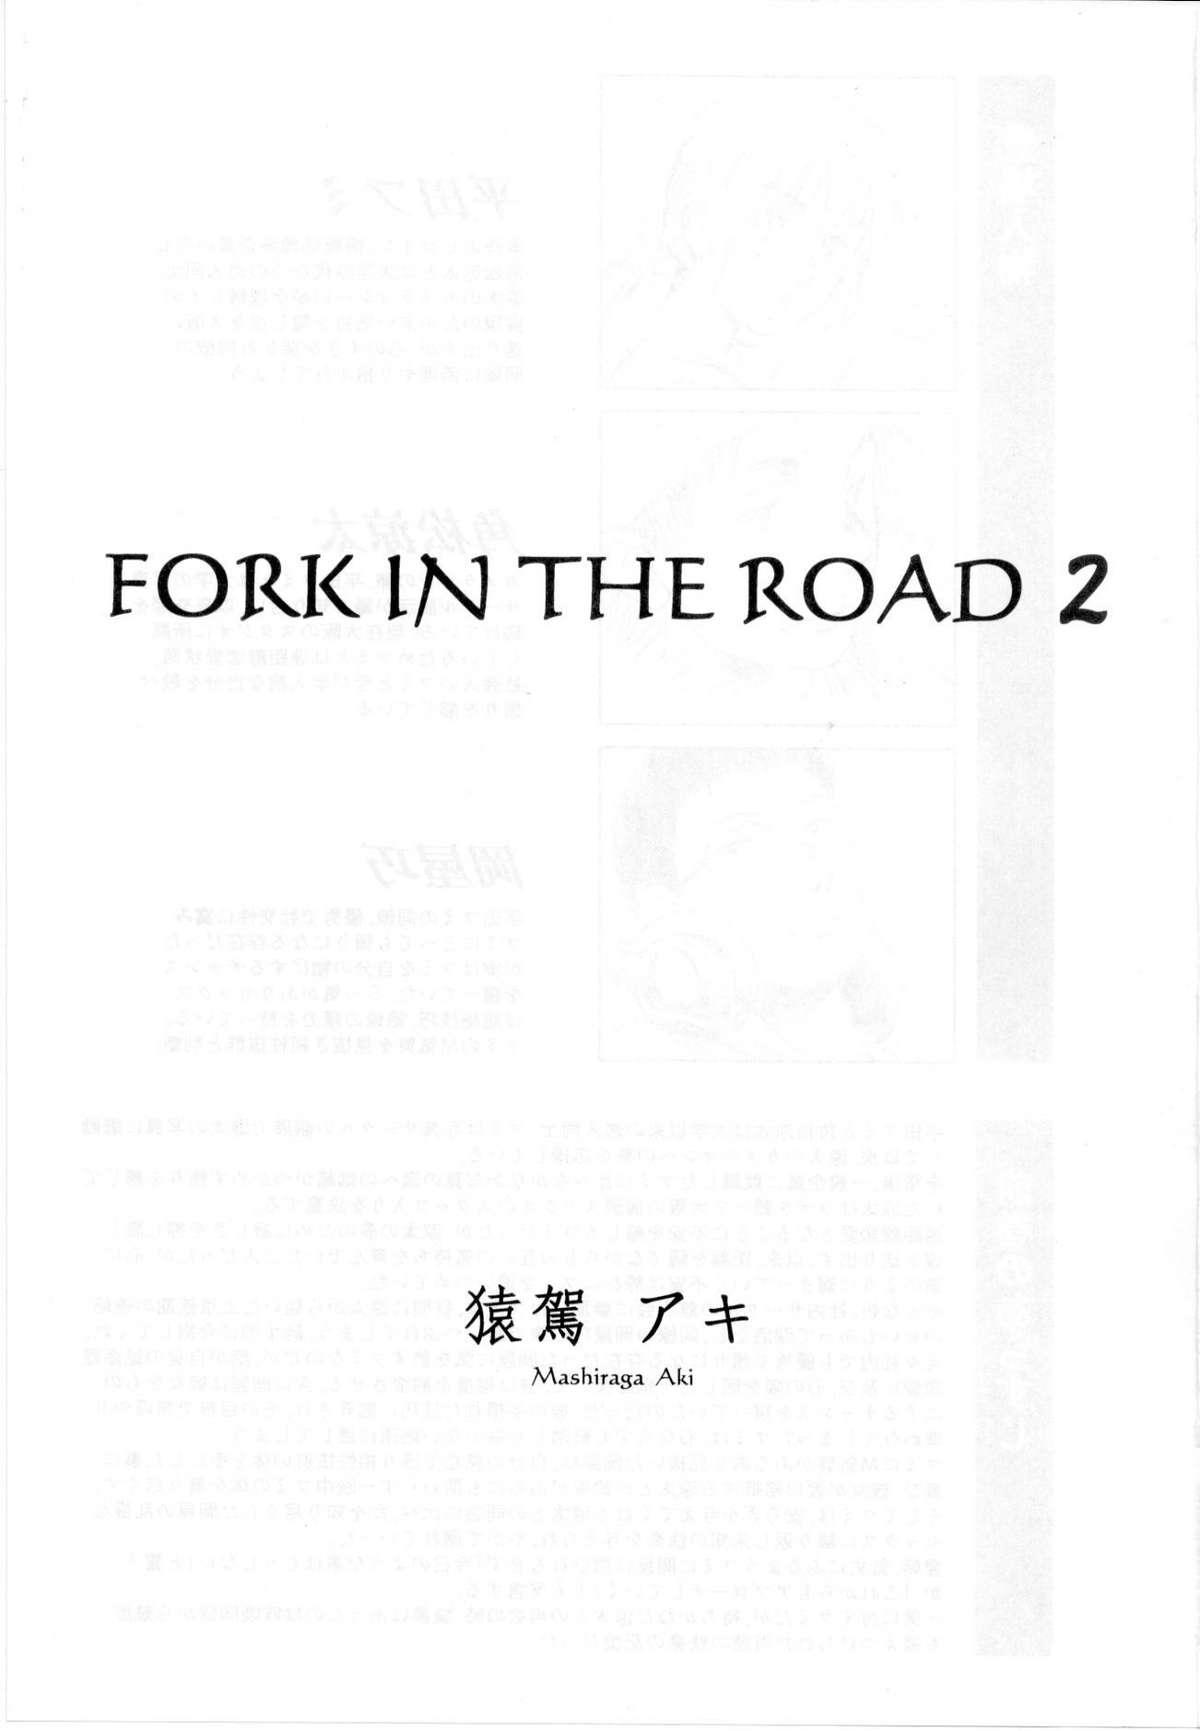 FORK IN THE ROAD 2 1